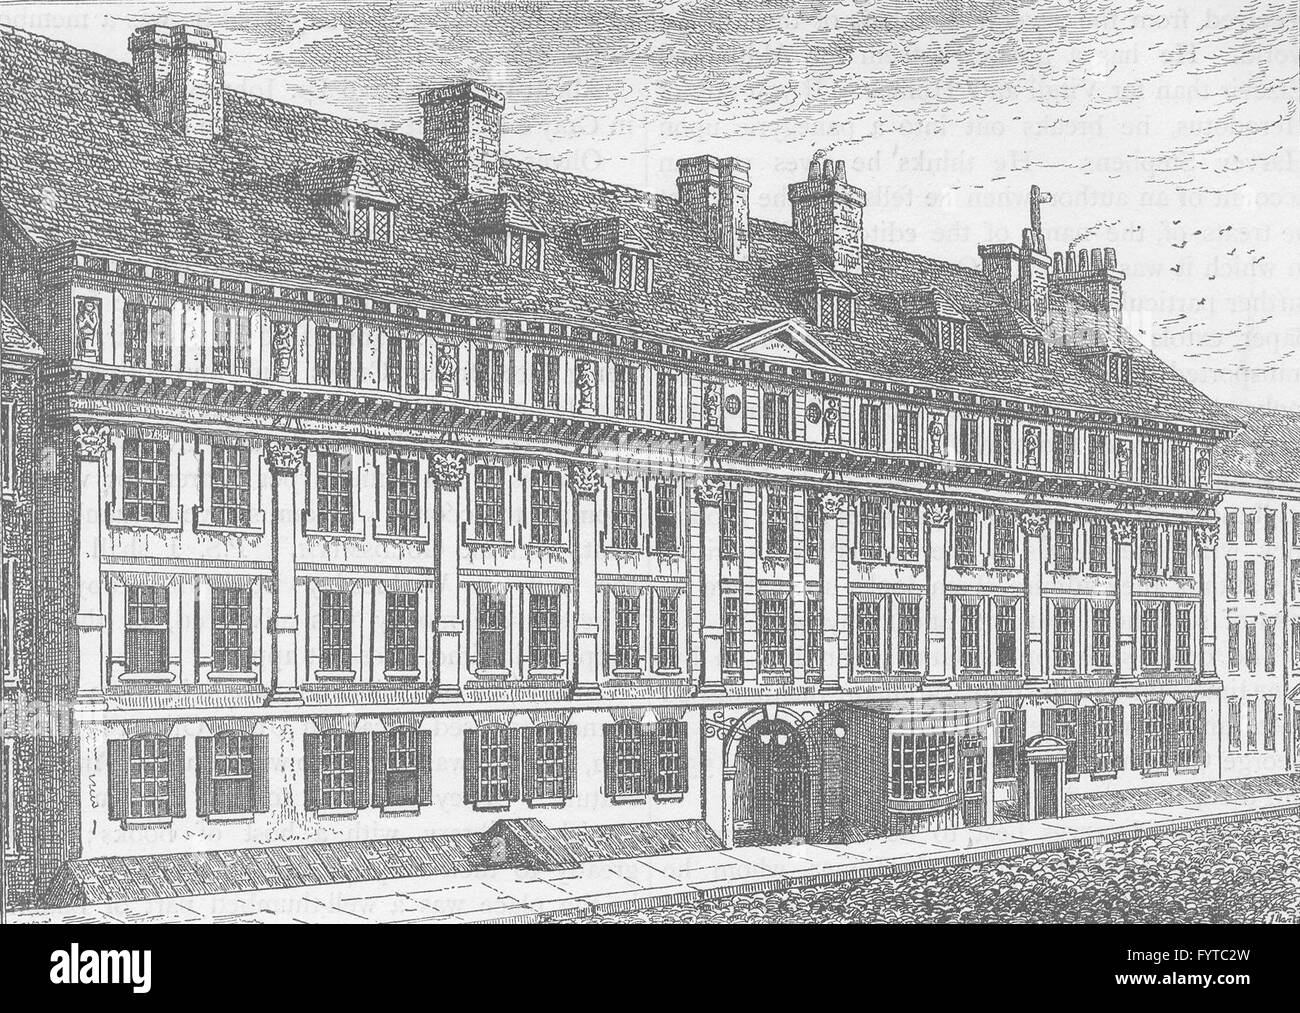 THE HOLBORN INNS OF COURT AND CHANCERY: Exterior of Furnival's Inn, 1754, c1880 - Stock Image